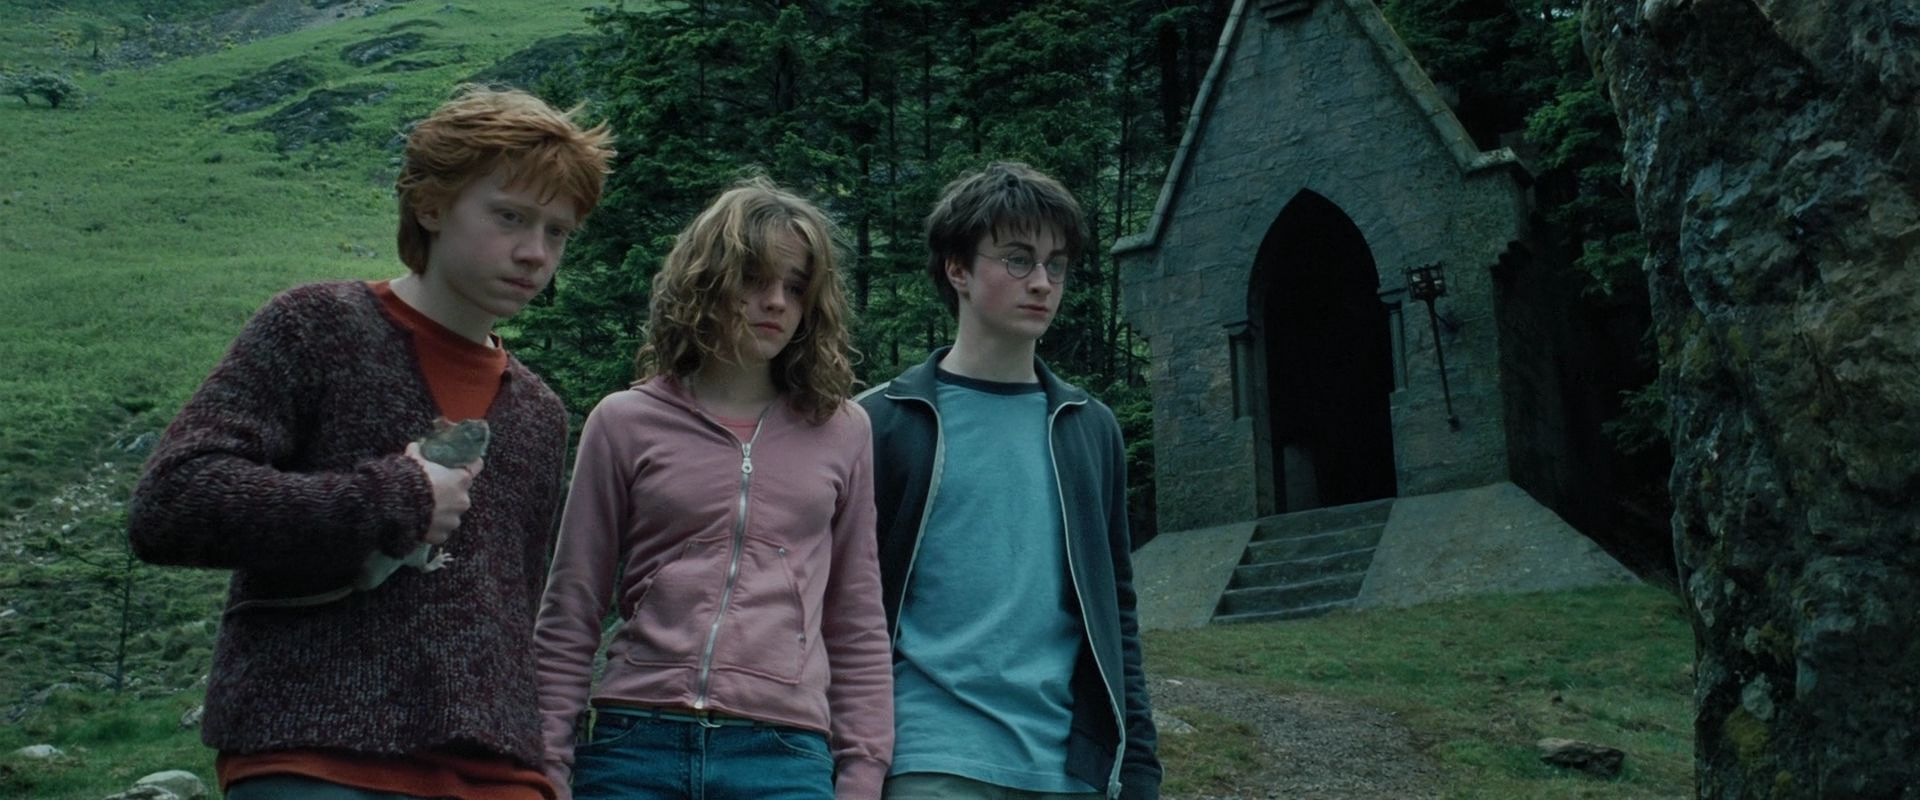 Prisoner Of Azkaban Is The Worst Film Of The Harry Potter Series So Why Does Everyone Love It